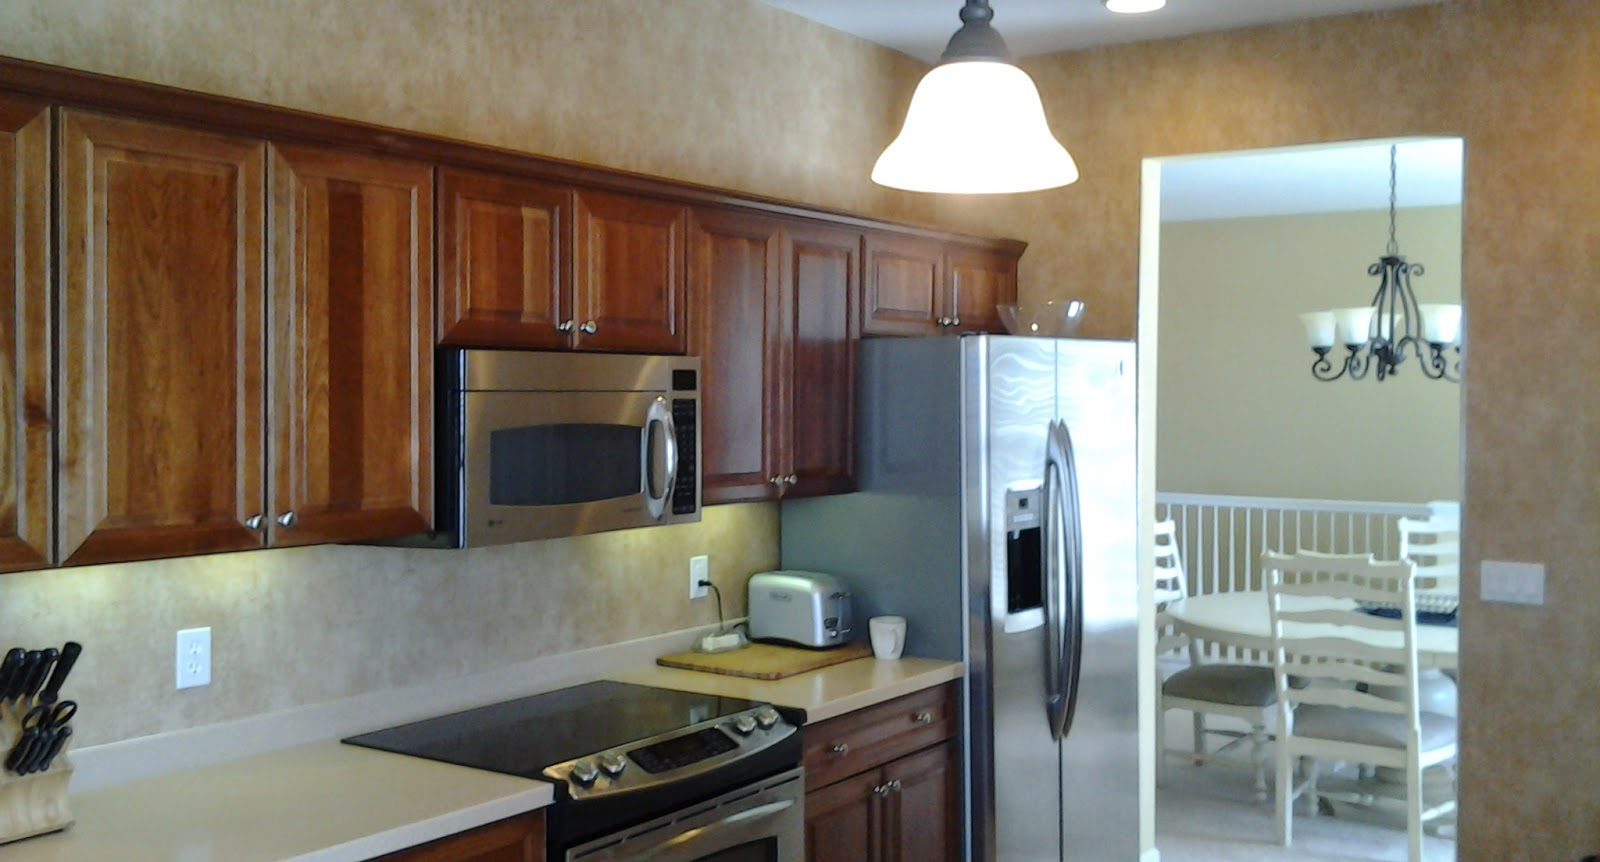 Upgraded kitchen and appliances